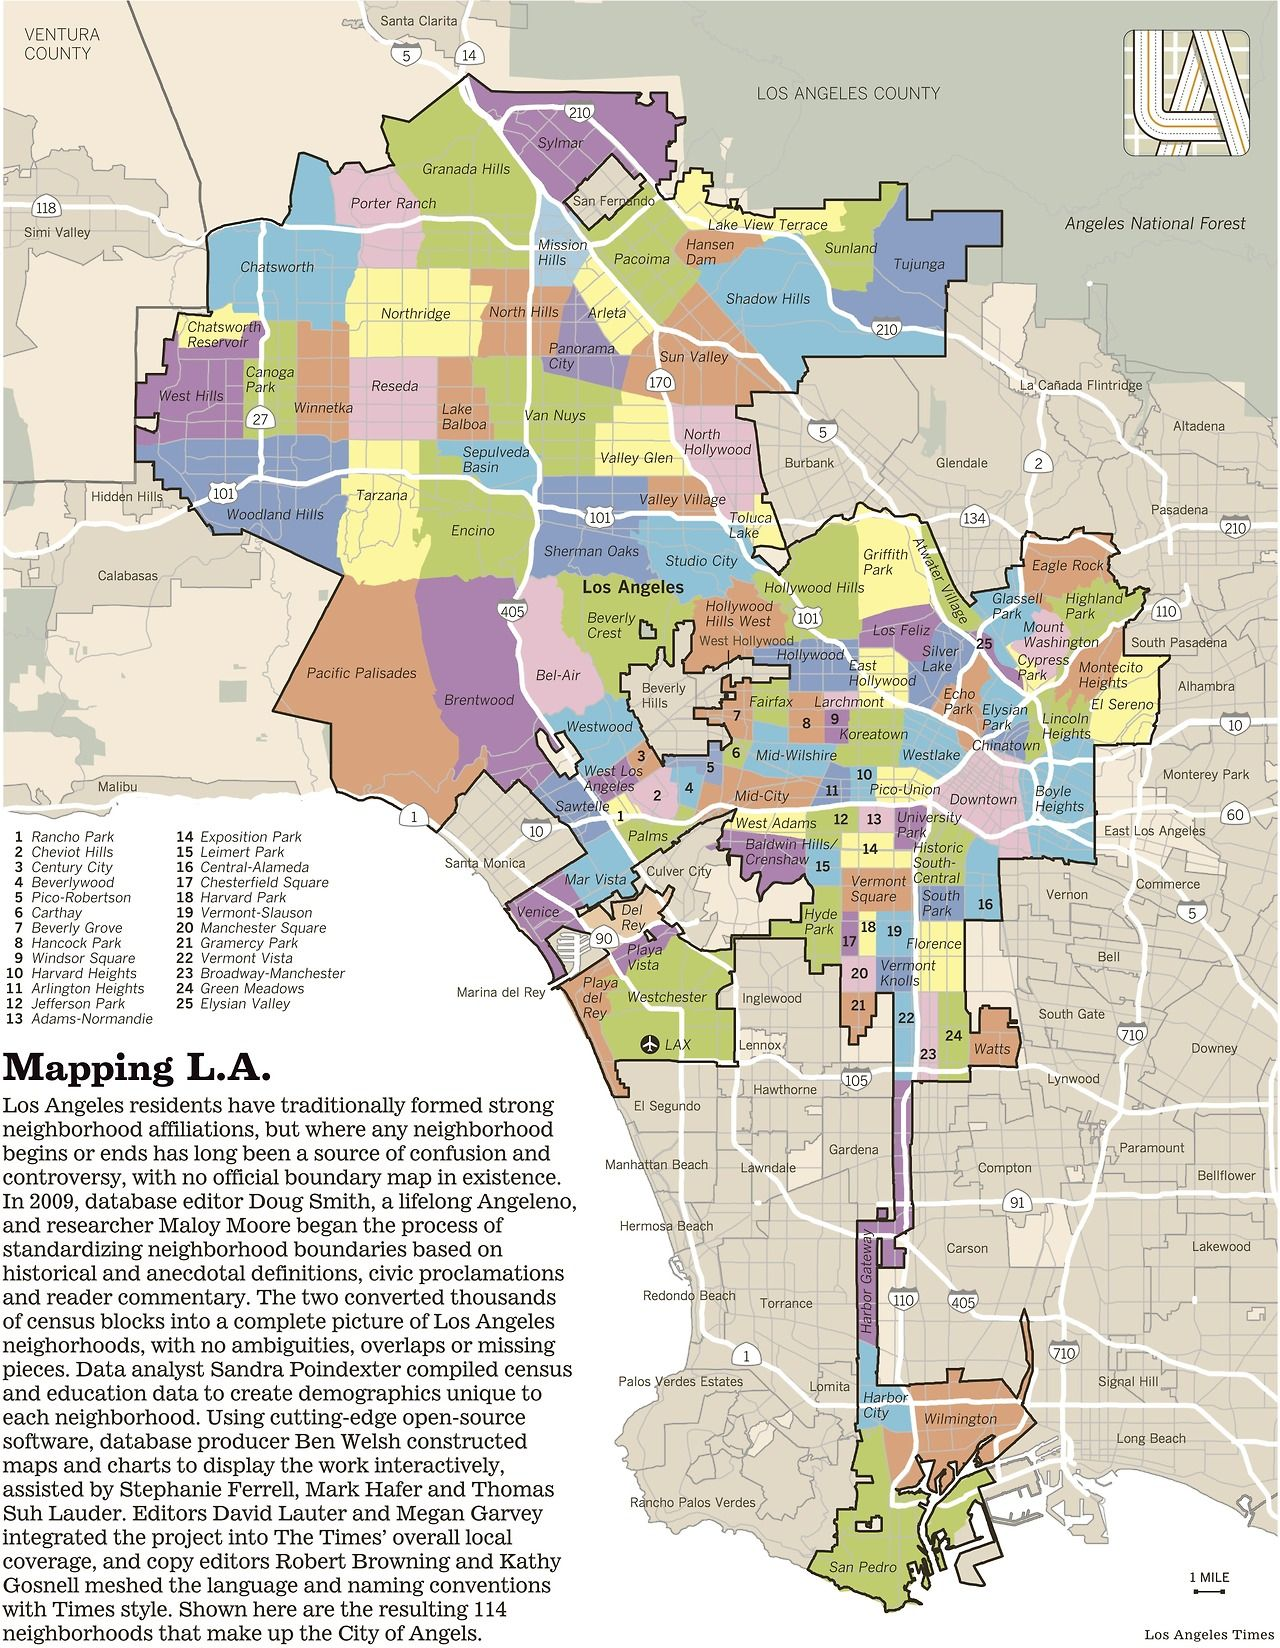 City Of Los Angeles Map maptitude1: This map shows the many neighborhoods of the sprawling